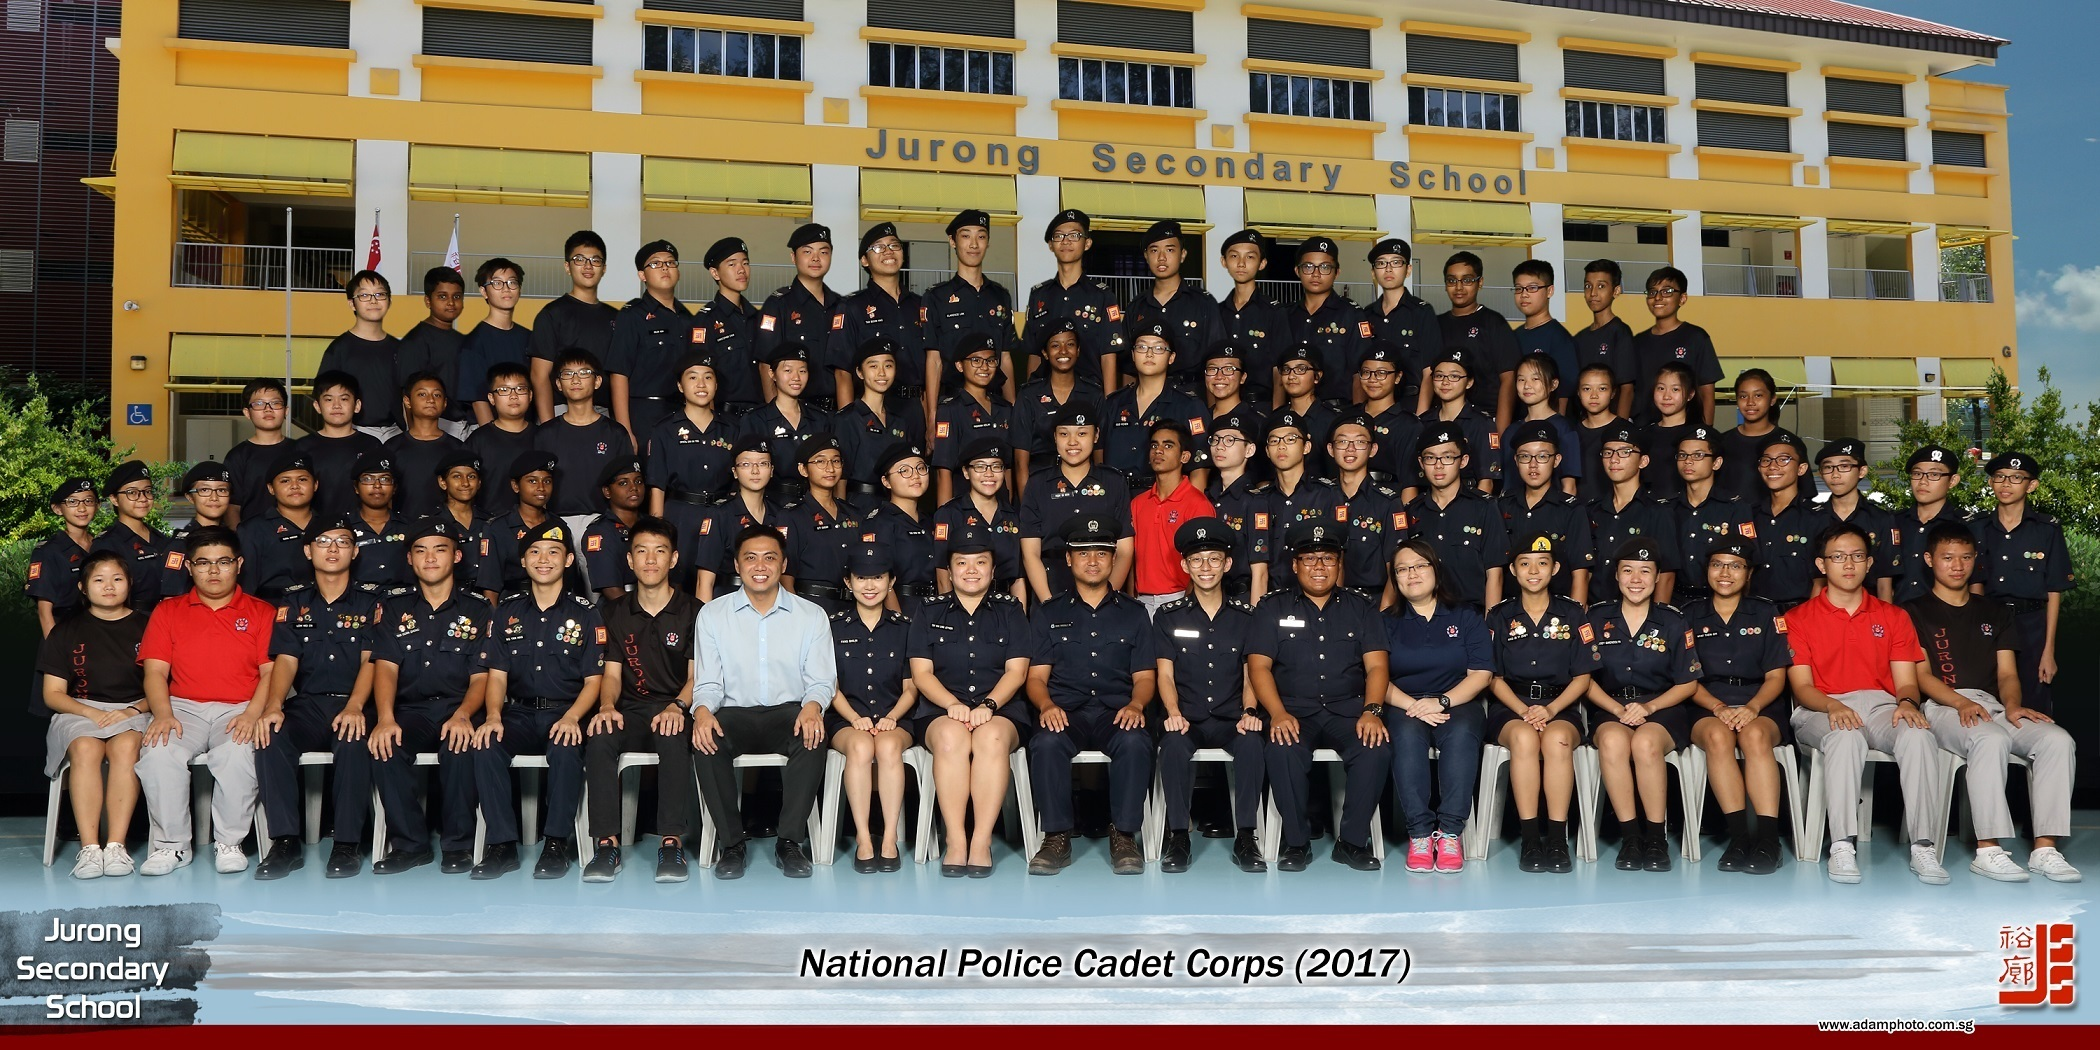 national police cadet corps 2.jpg